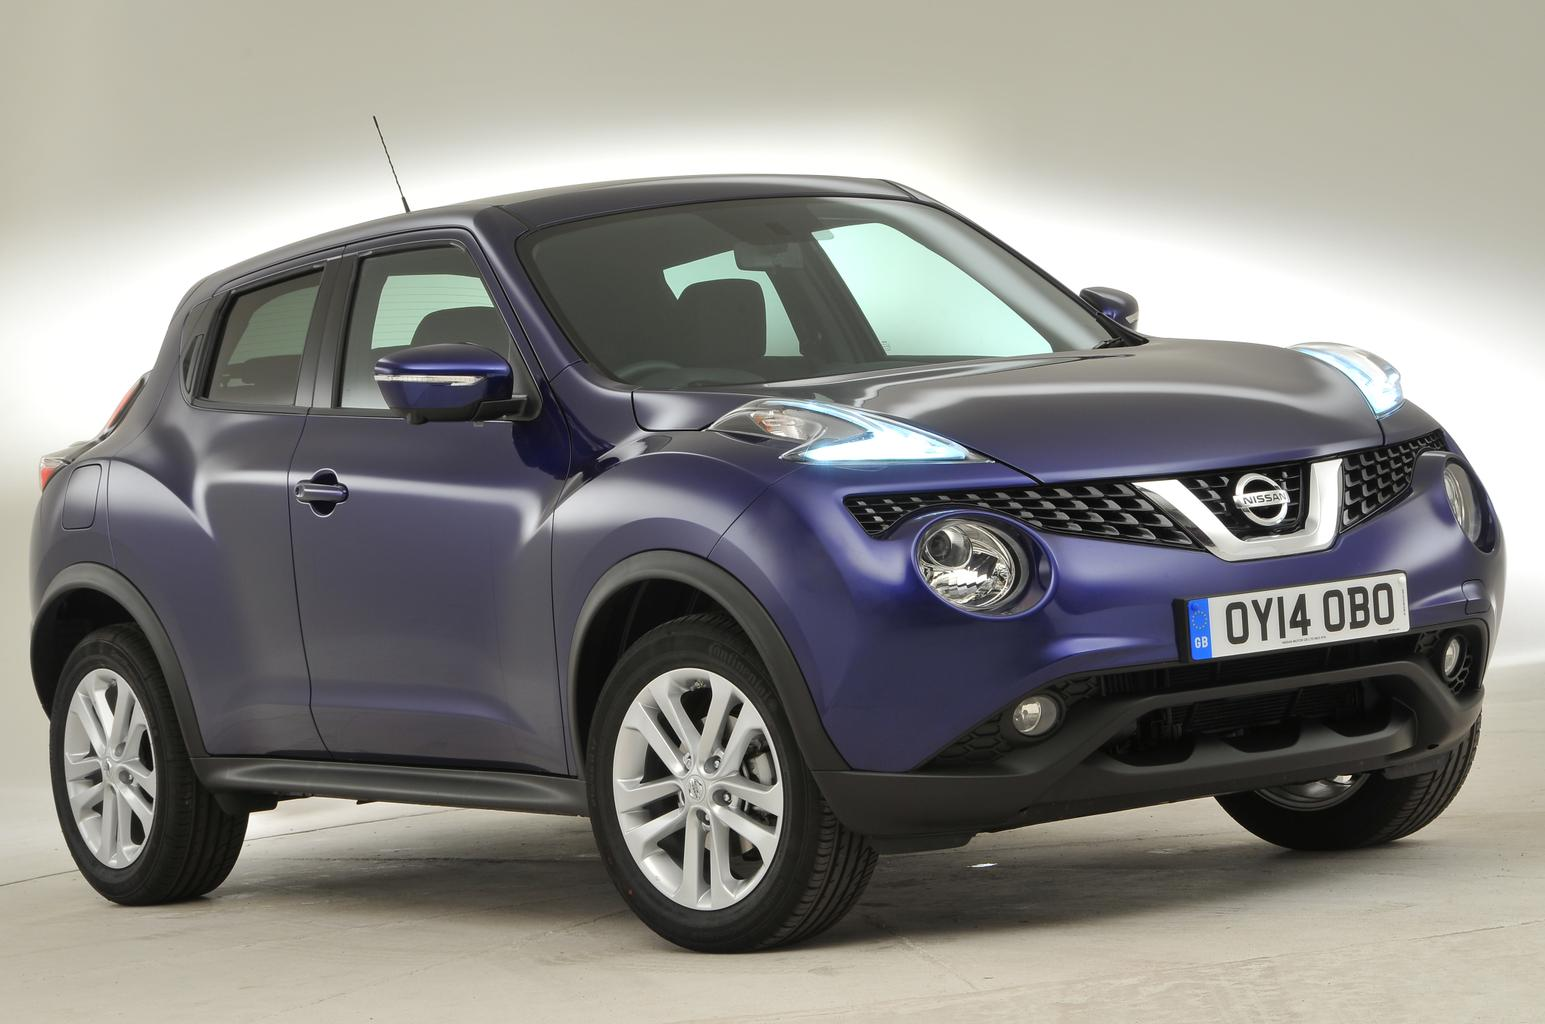 Used test: Mini Countryman vs Nissan Juke vs Skoda Yeti